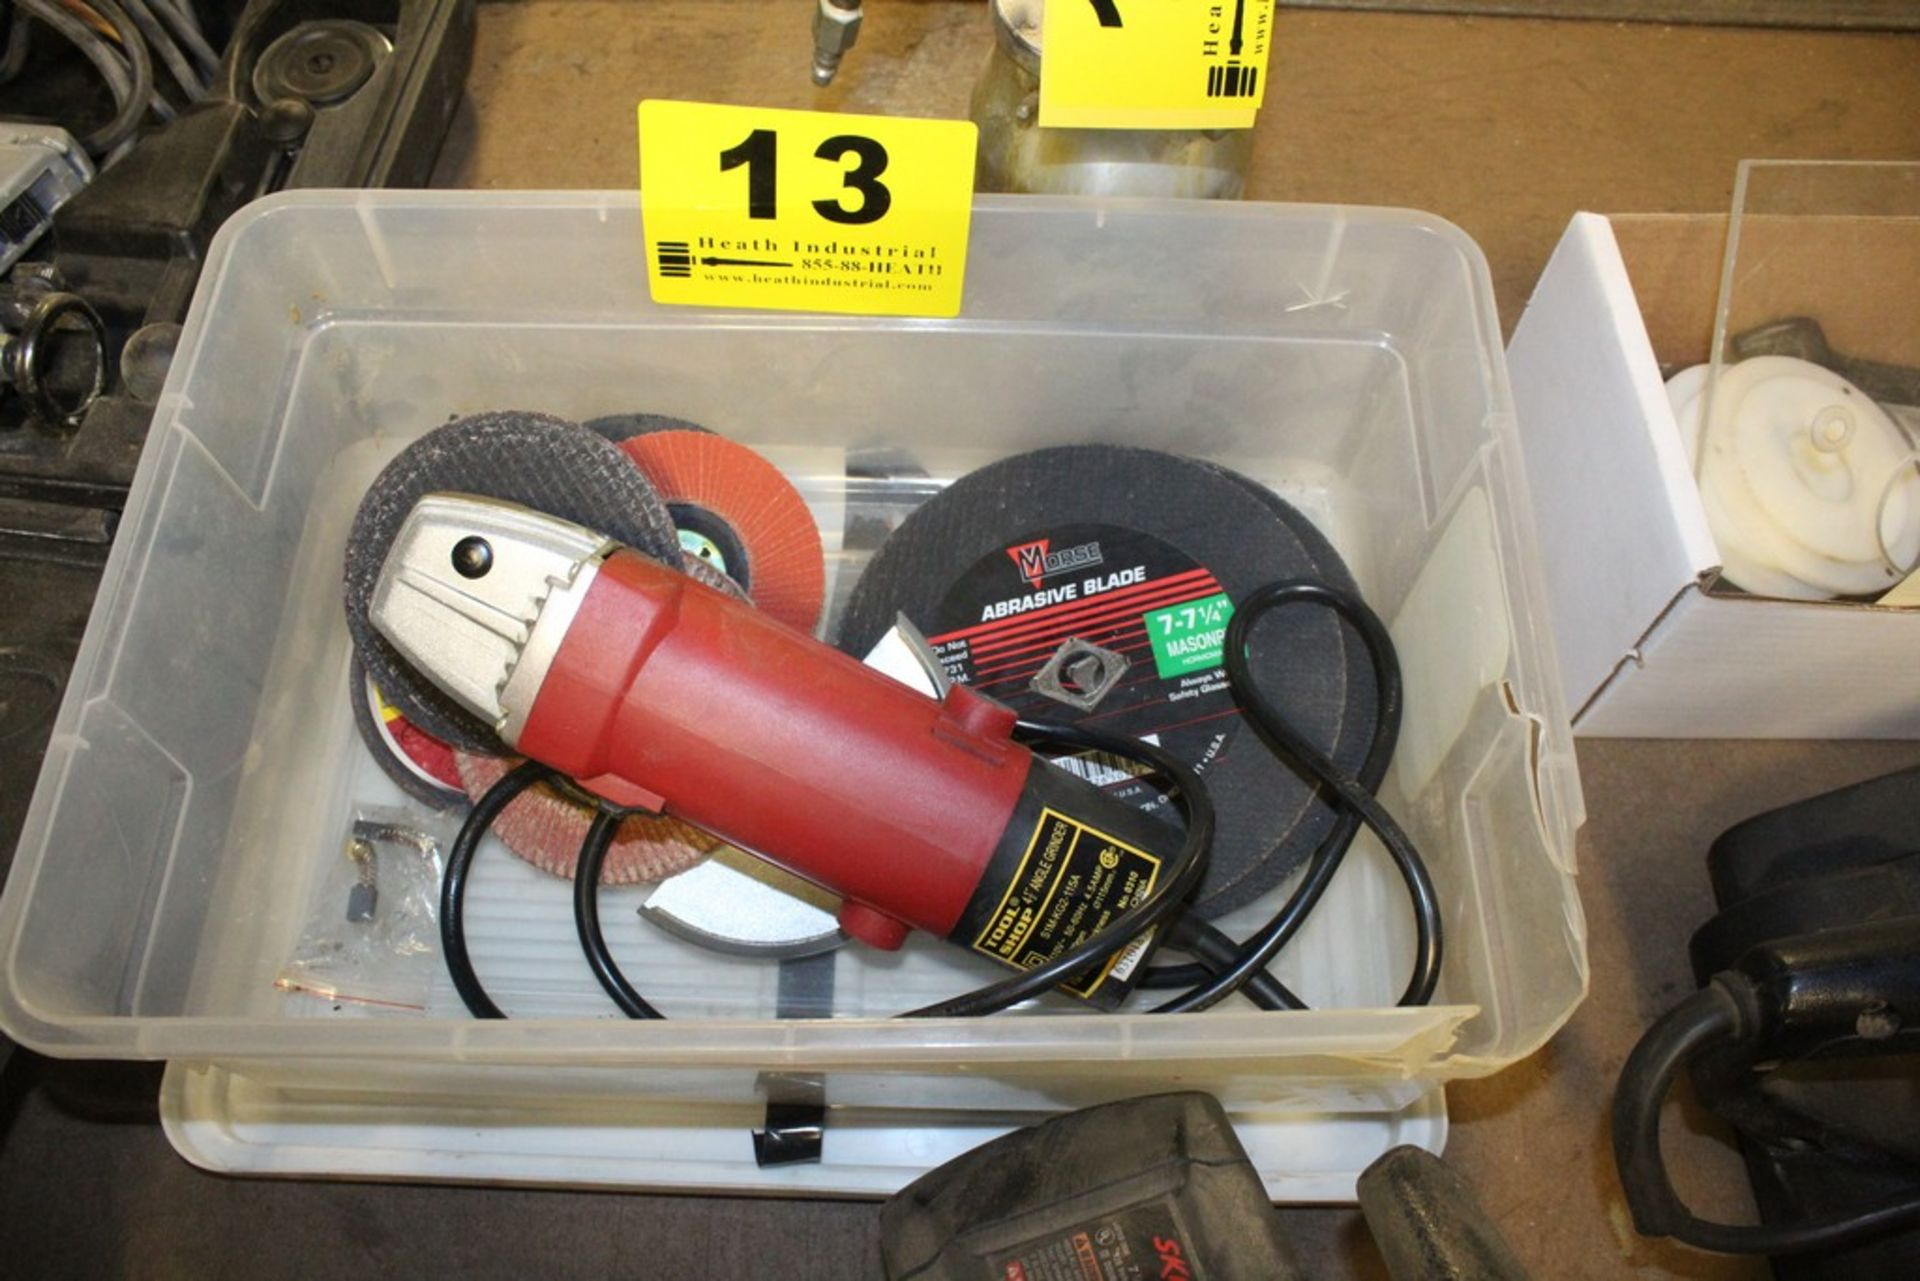 """Lot 13 - TOOL SHOP 4-1/2"""" RIGHT ANGLE GRINDER WITH WHEELS PLUS ABRASIVE CUTTING BLADES IN BOX"""